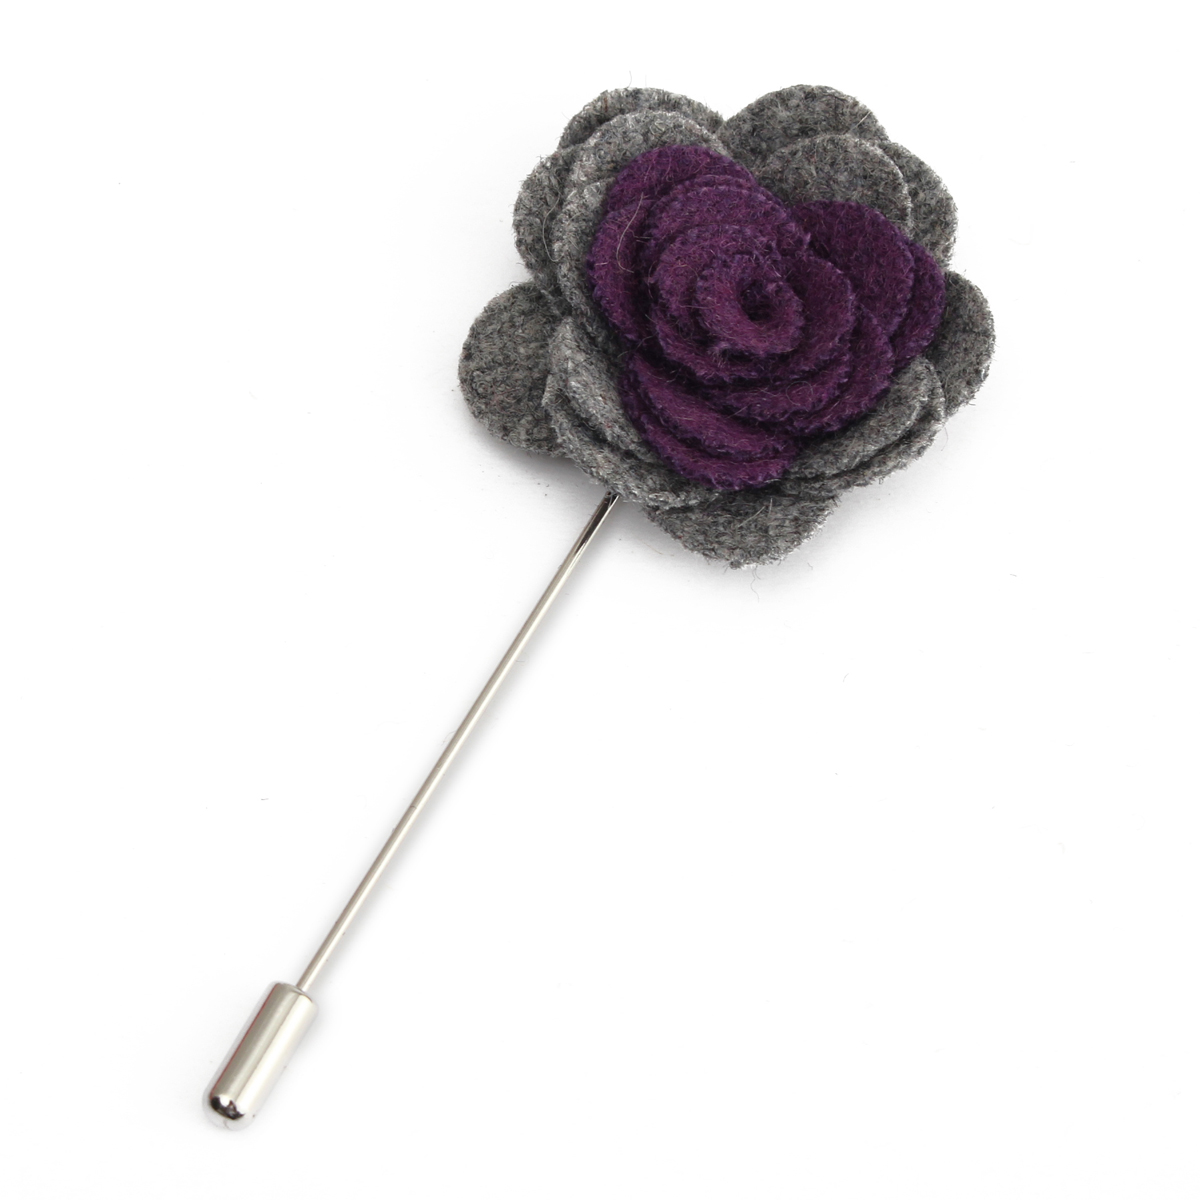 1X Men's Lapel Flower Rose Mixed Color Handmade Boutonniere Stick Brooch Pin